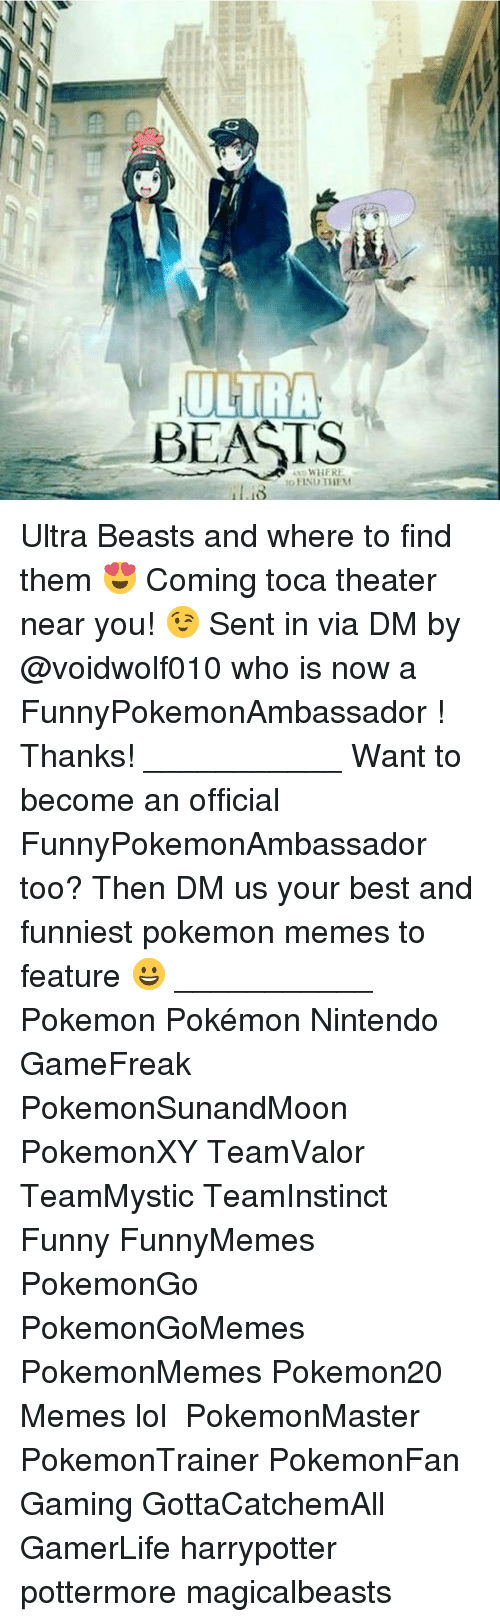 Memes, Pokemon, and Beastly: ULTRA  BEASTS  WHERE Ultra Beasts and where to find them 😍 Coming toca theater near you! 😉 Sent in via DM by @voidwolf010 who is now a FunnyPokemonAmbassador ! Thanks! ___________ Want to become an official FunnyPokemonAmbassador too? Then DM us your best and funniest pokemon memes to feature 😀 ___________ Pokemon Pokémon Nintendo GameFreak PokemonSunandMoon PokemonXY TeamValor TeamMystic TeamInstinct Funny FunnyMemes PokemonGo PokemonGoMemes PokemonMemes Pokemon20 Memes lol ポケットモンスター PokemonMaster PokemonTrainer PokemonFan Gaming GottaCatchemAll GamerLife harrypotter pottermore magicalbeasts